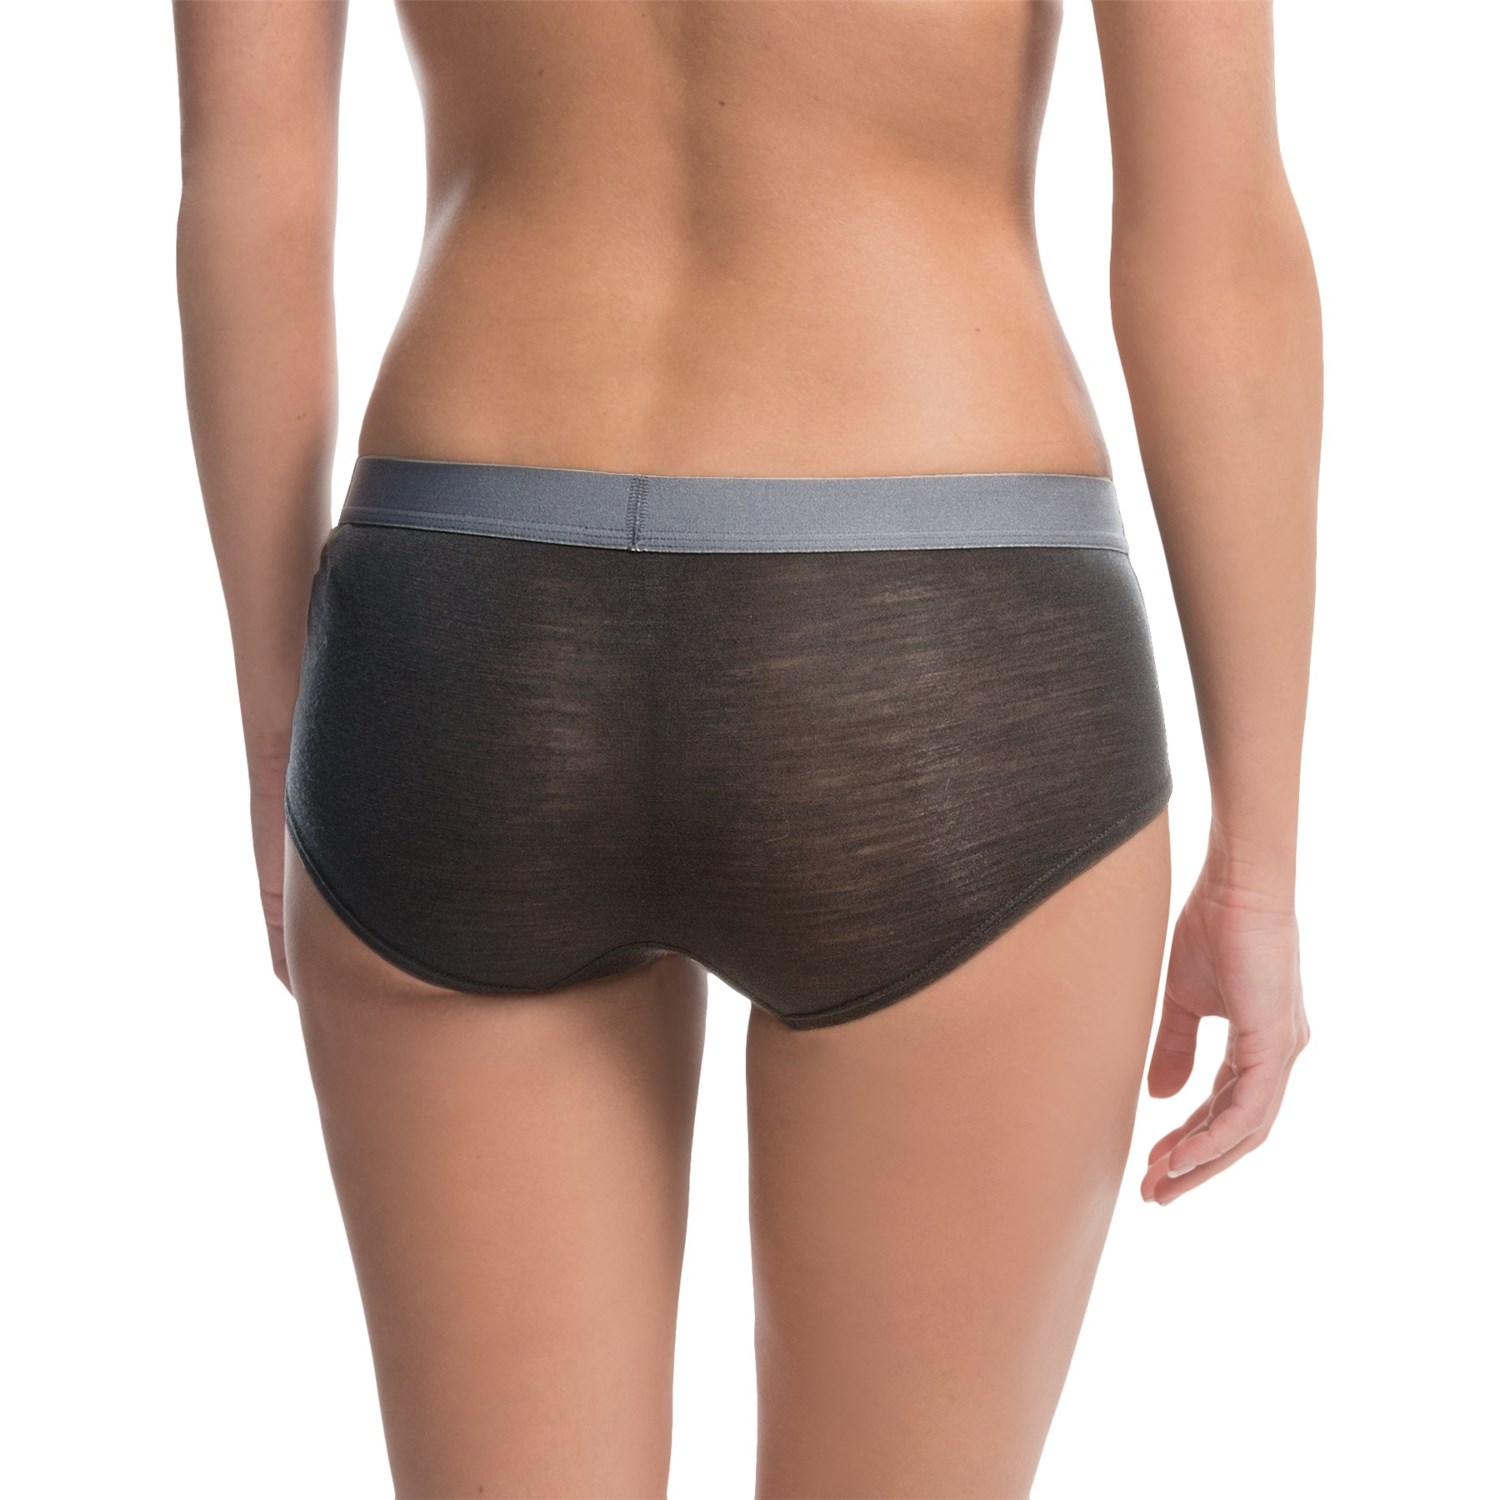 Silky soft and lightweight, our women's underwear is the perfect addition to your workout wardrobe. Merino wool's natural fiber temperature control properties and moisture wicking abilities make it the perfect material for camis, sports bras and underwear.